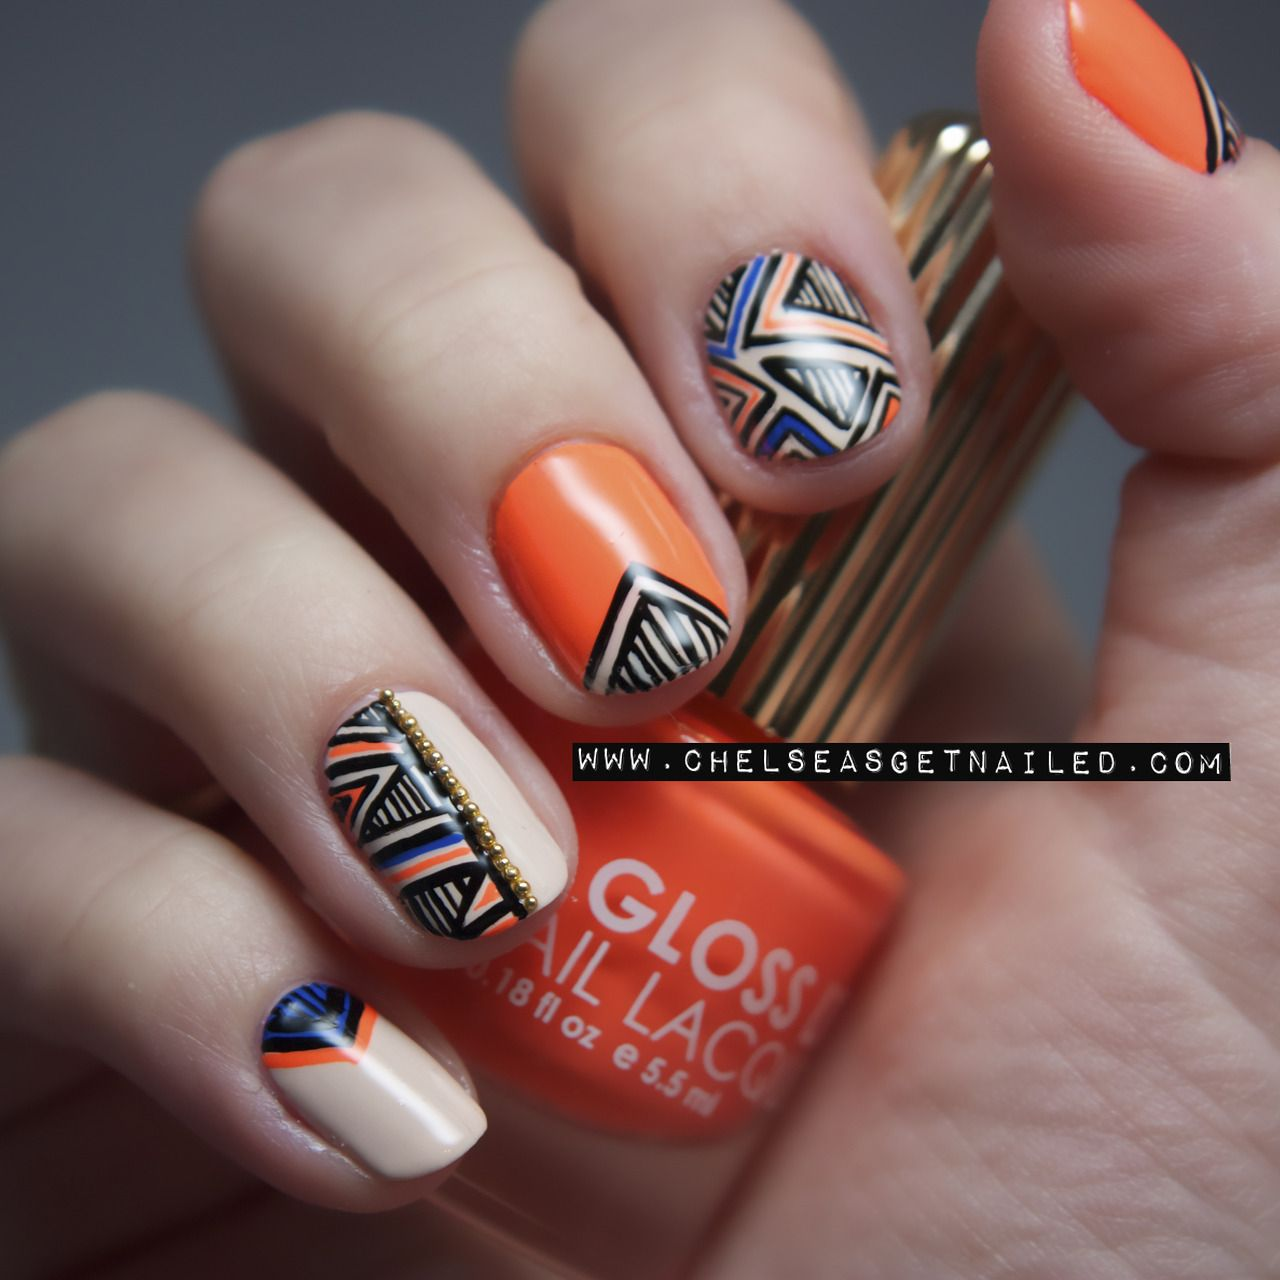 New nail design up on the blog! Used OPI, Floss Gloss, Cult Nails, and Essie for this.